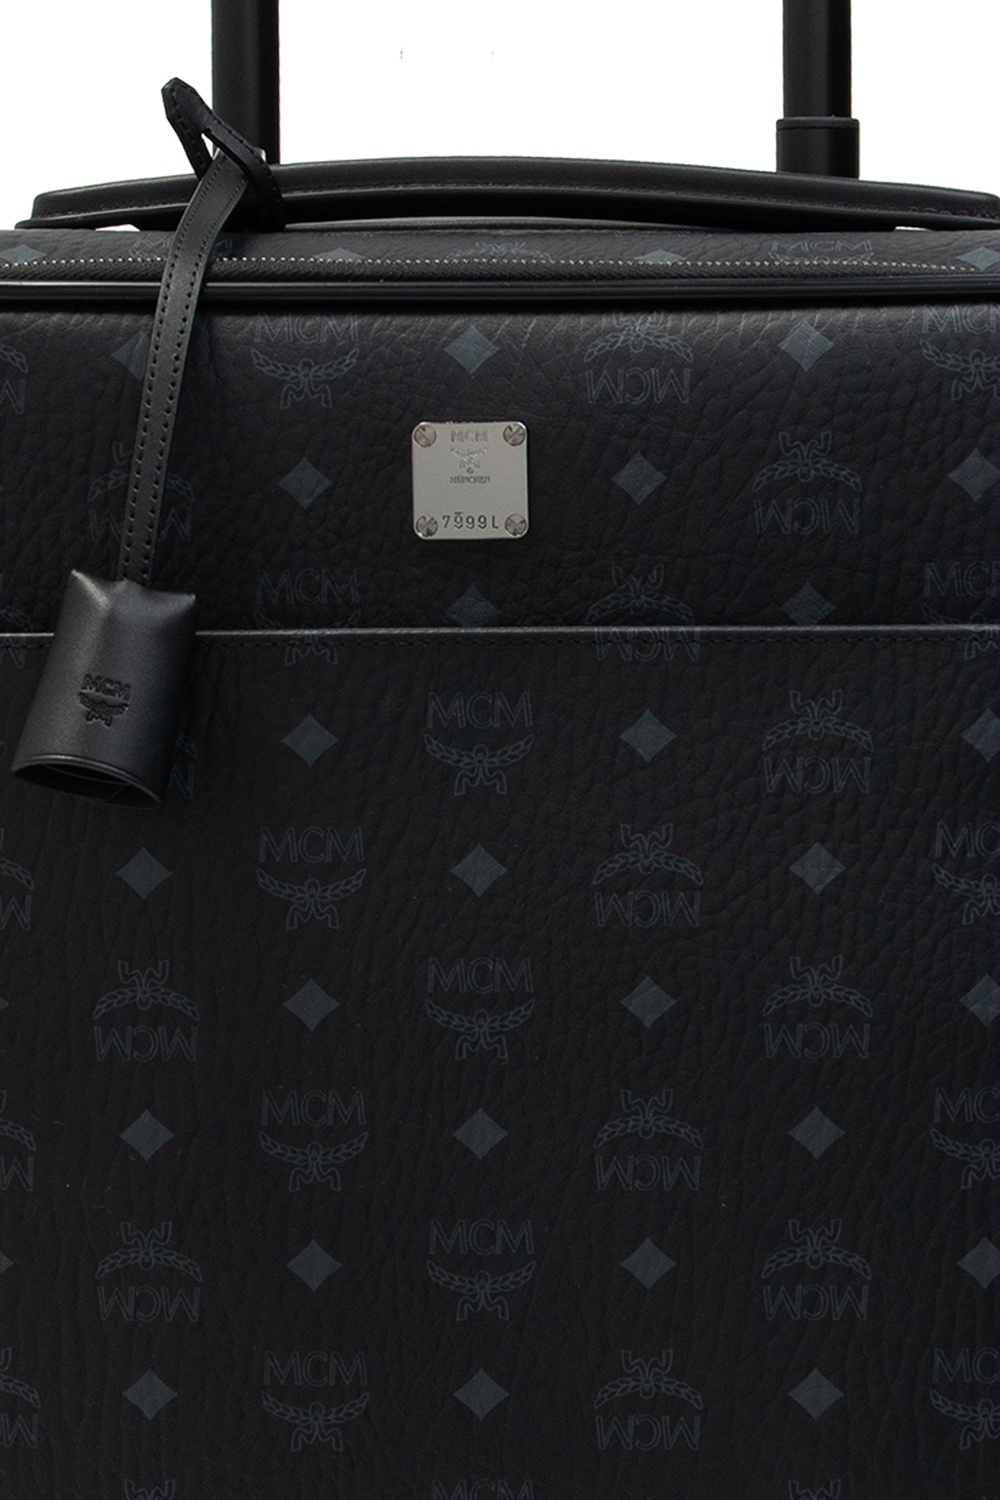 MCM Suitcase with rotating wheels